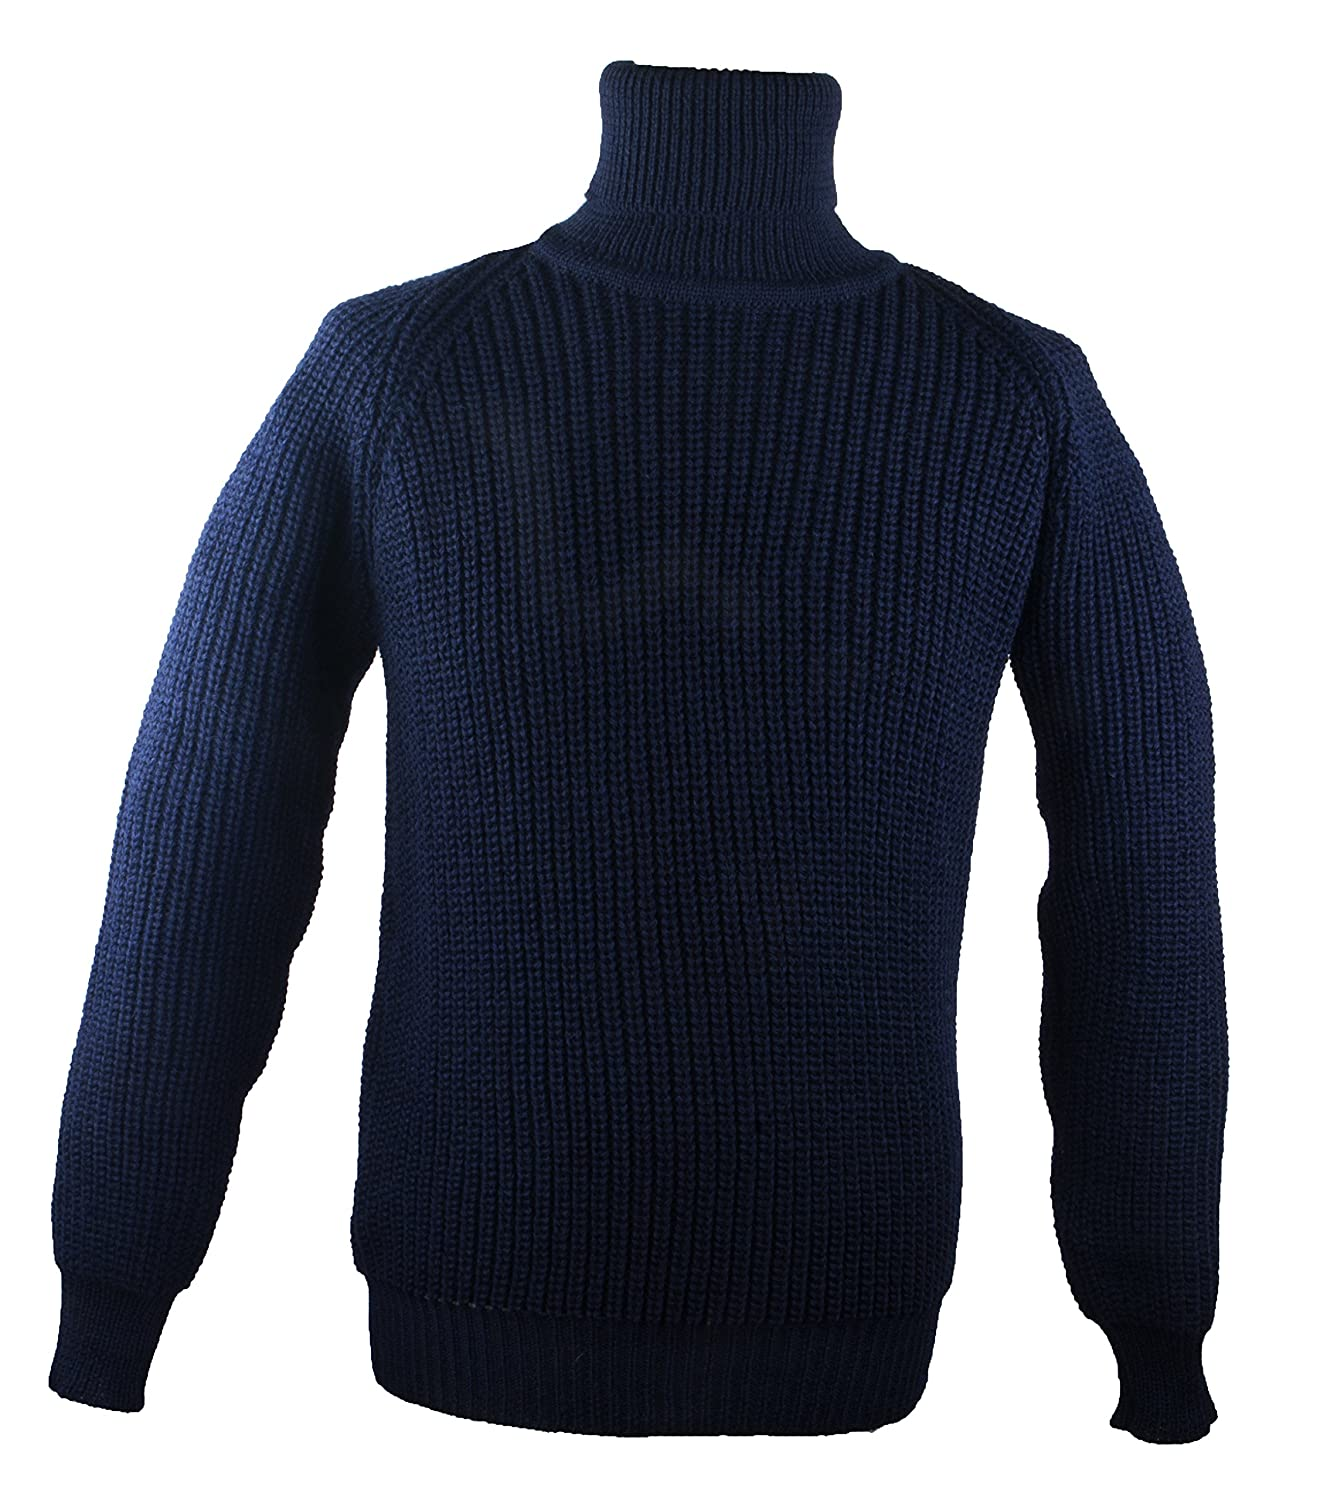 100% Irish Merino Wool Fishermans Navy Roll Collar Rib Sweater by West End Knitwear